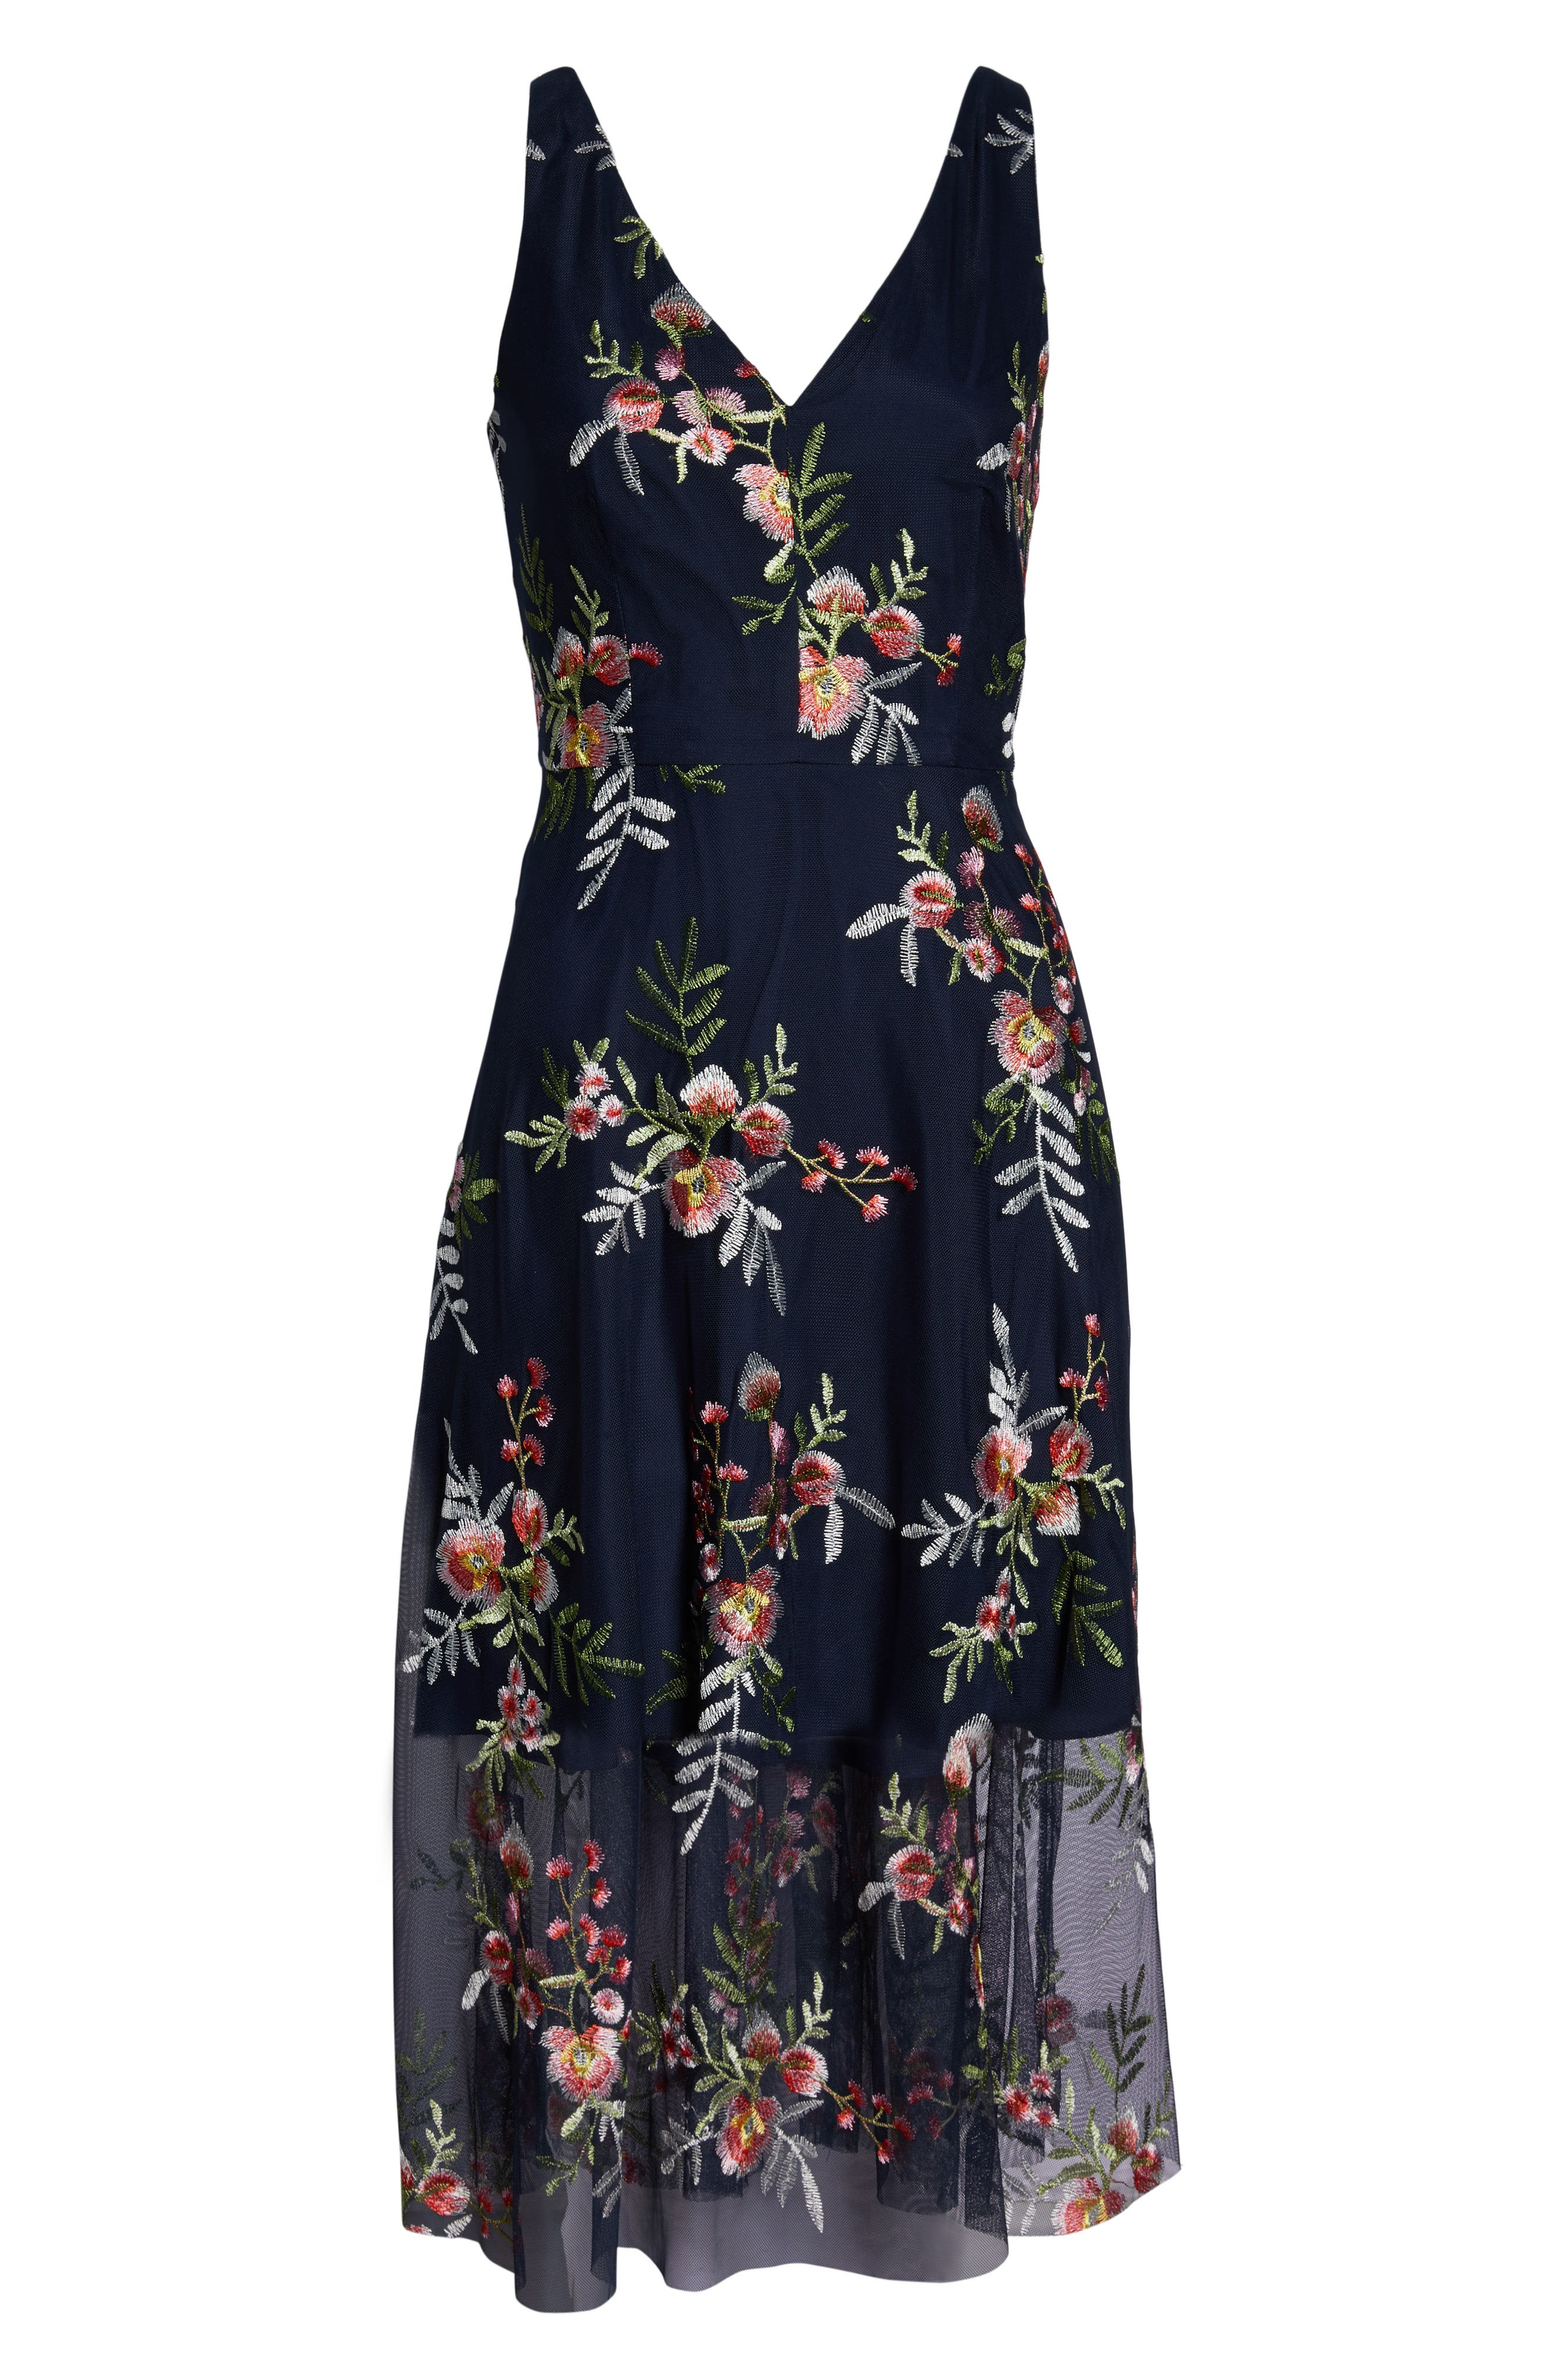 VINCE CAMUTO, Floral Embroidered Mesh Midi Dress, Alternate thumbnail 8, color, NAVY/ MULTI